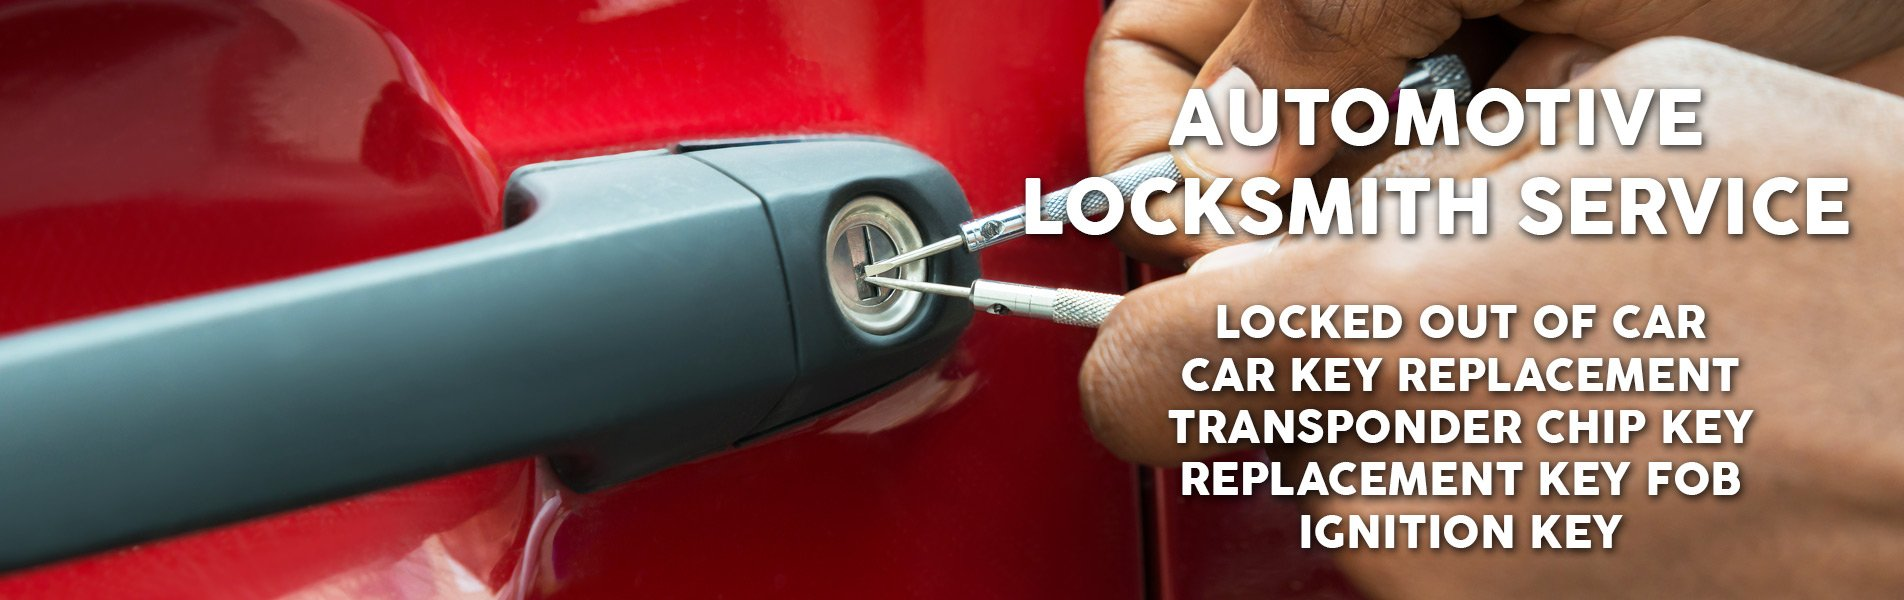 South Park Township Locksmith Store South Park Township, PA 412-504-7985